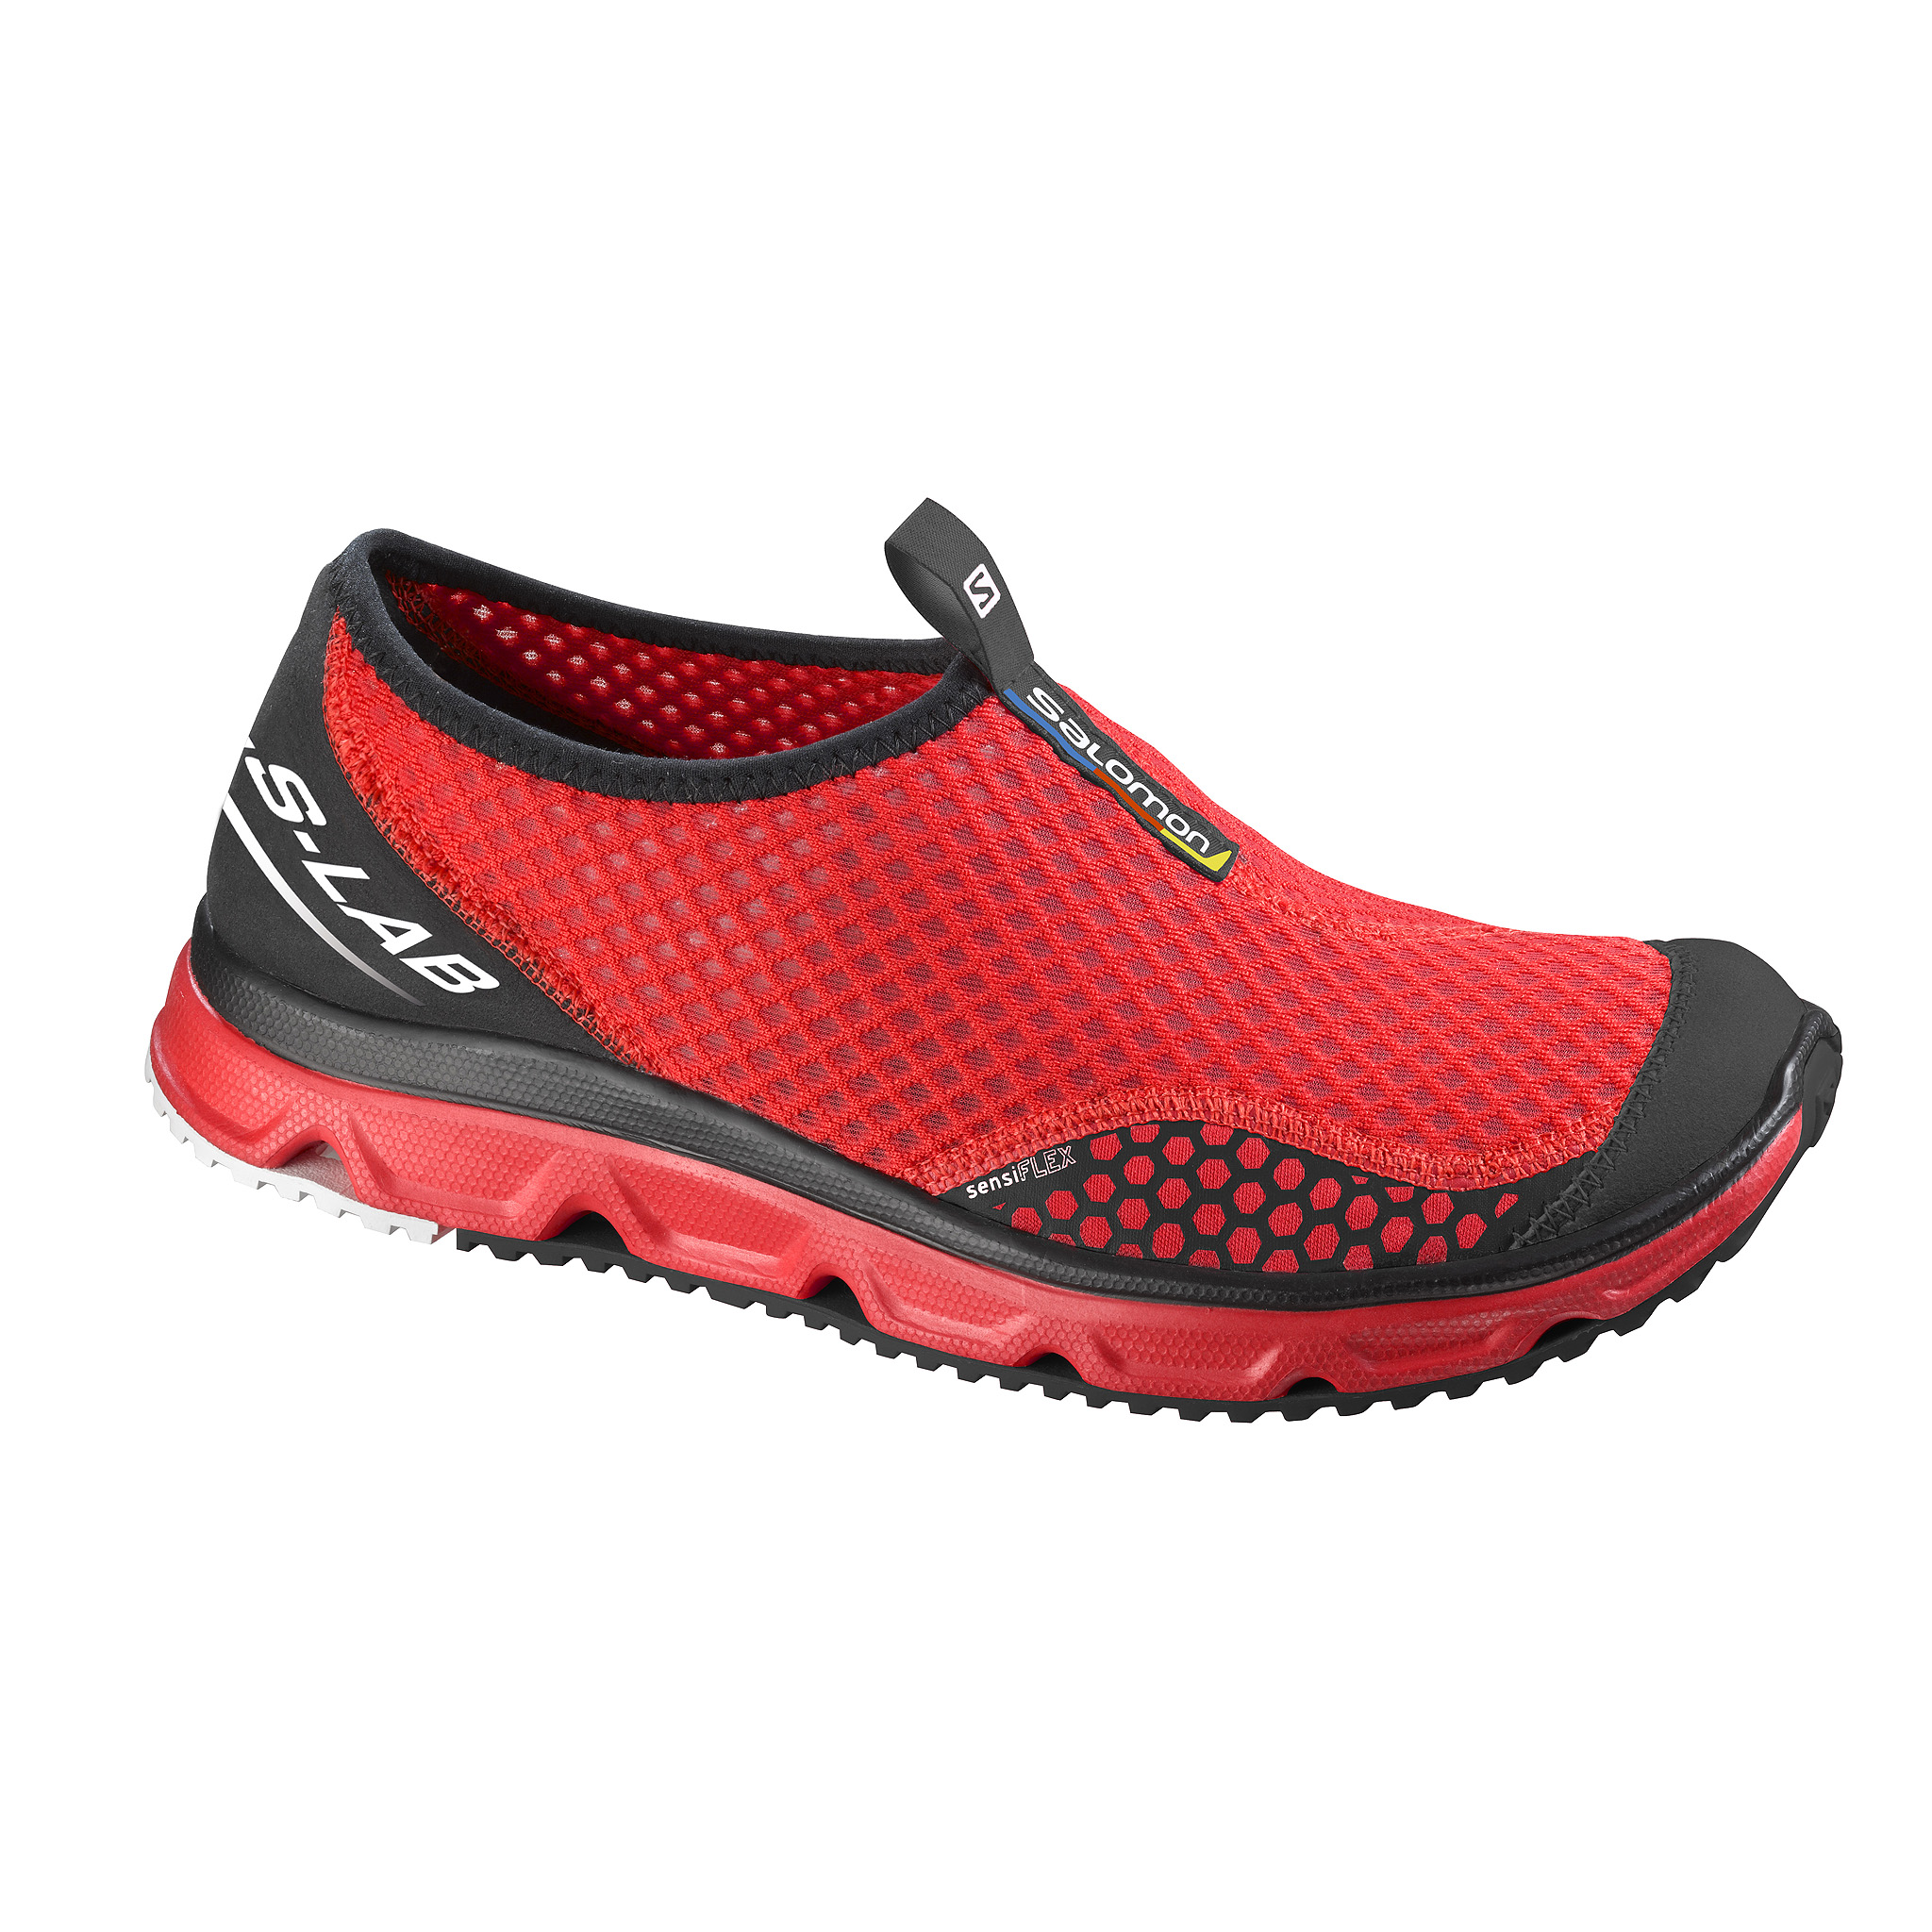 SALOMON S-LAB RX 3.0 RACING RED/BLACK/WHITE